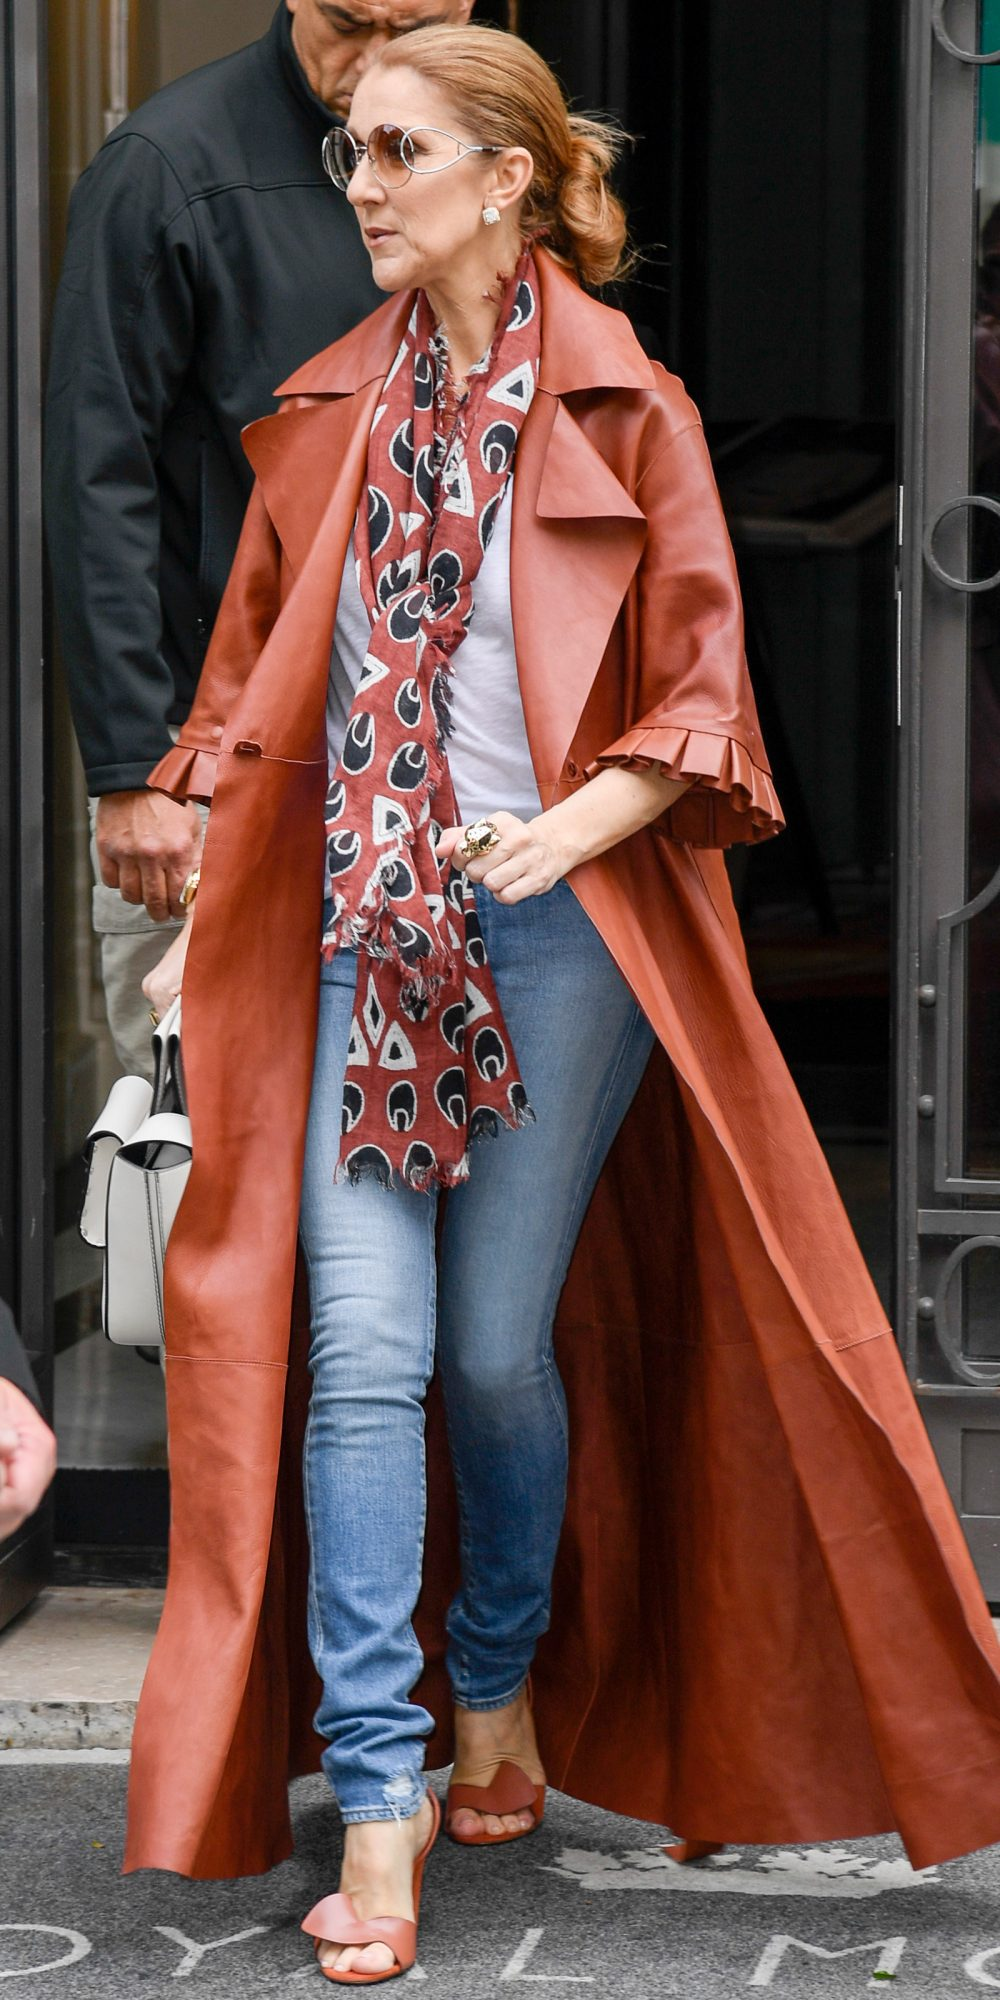 IN A BRICK RED LEATHERCOAT